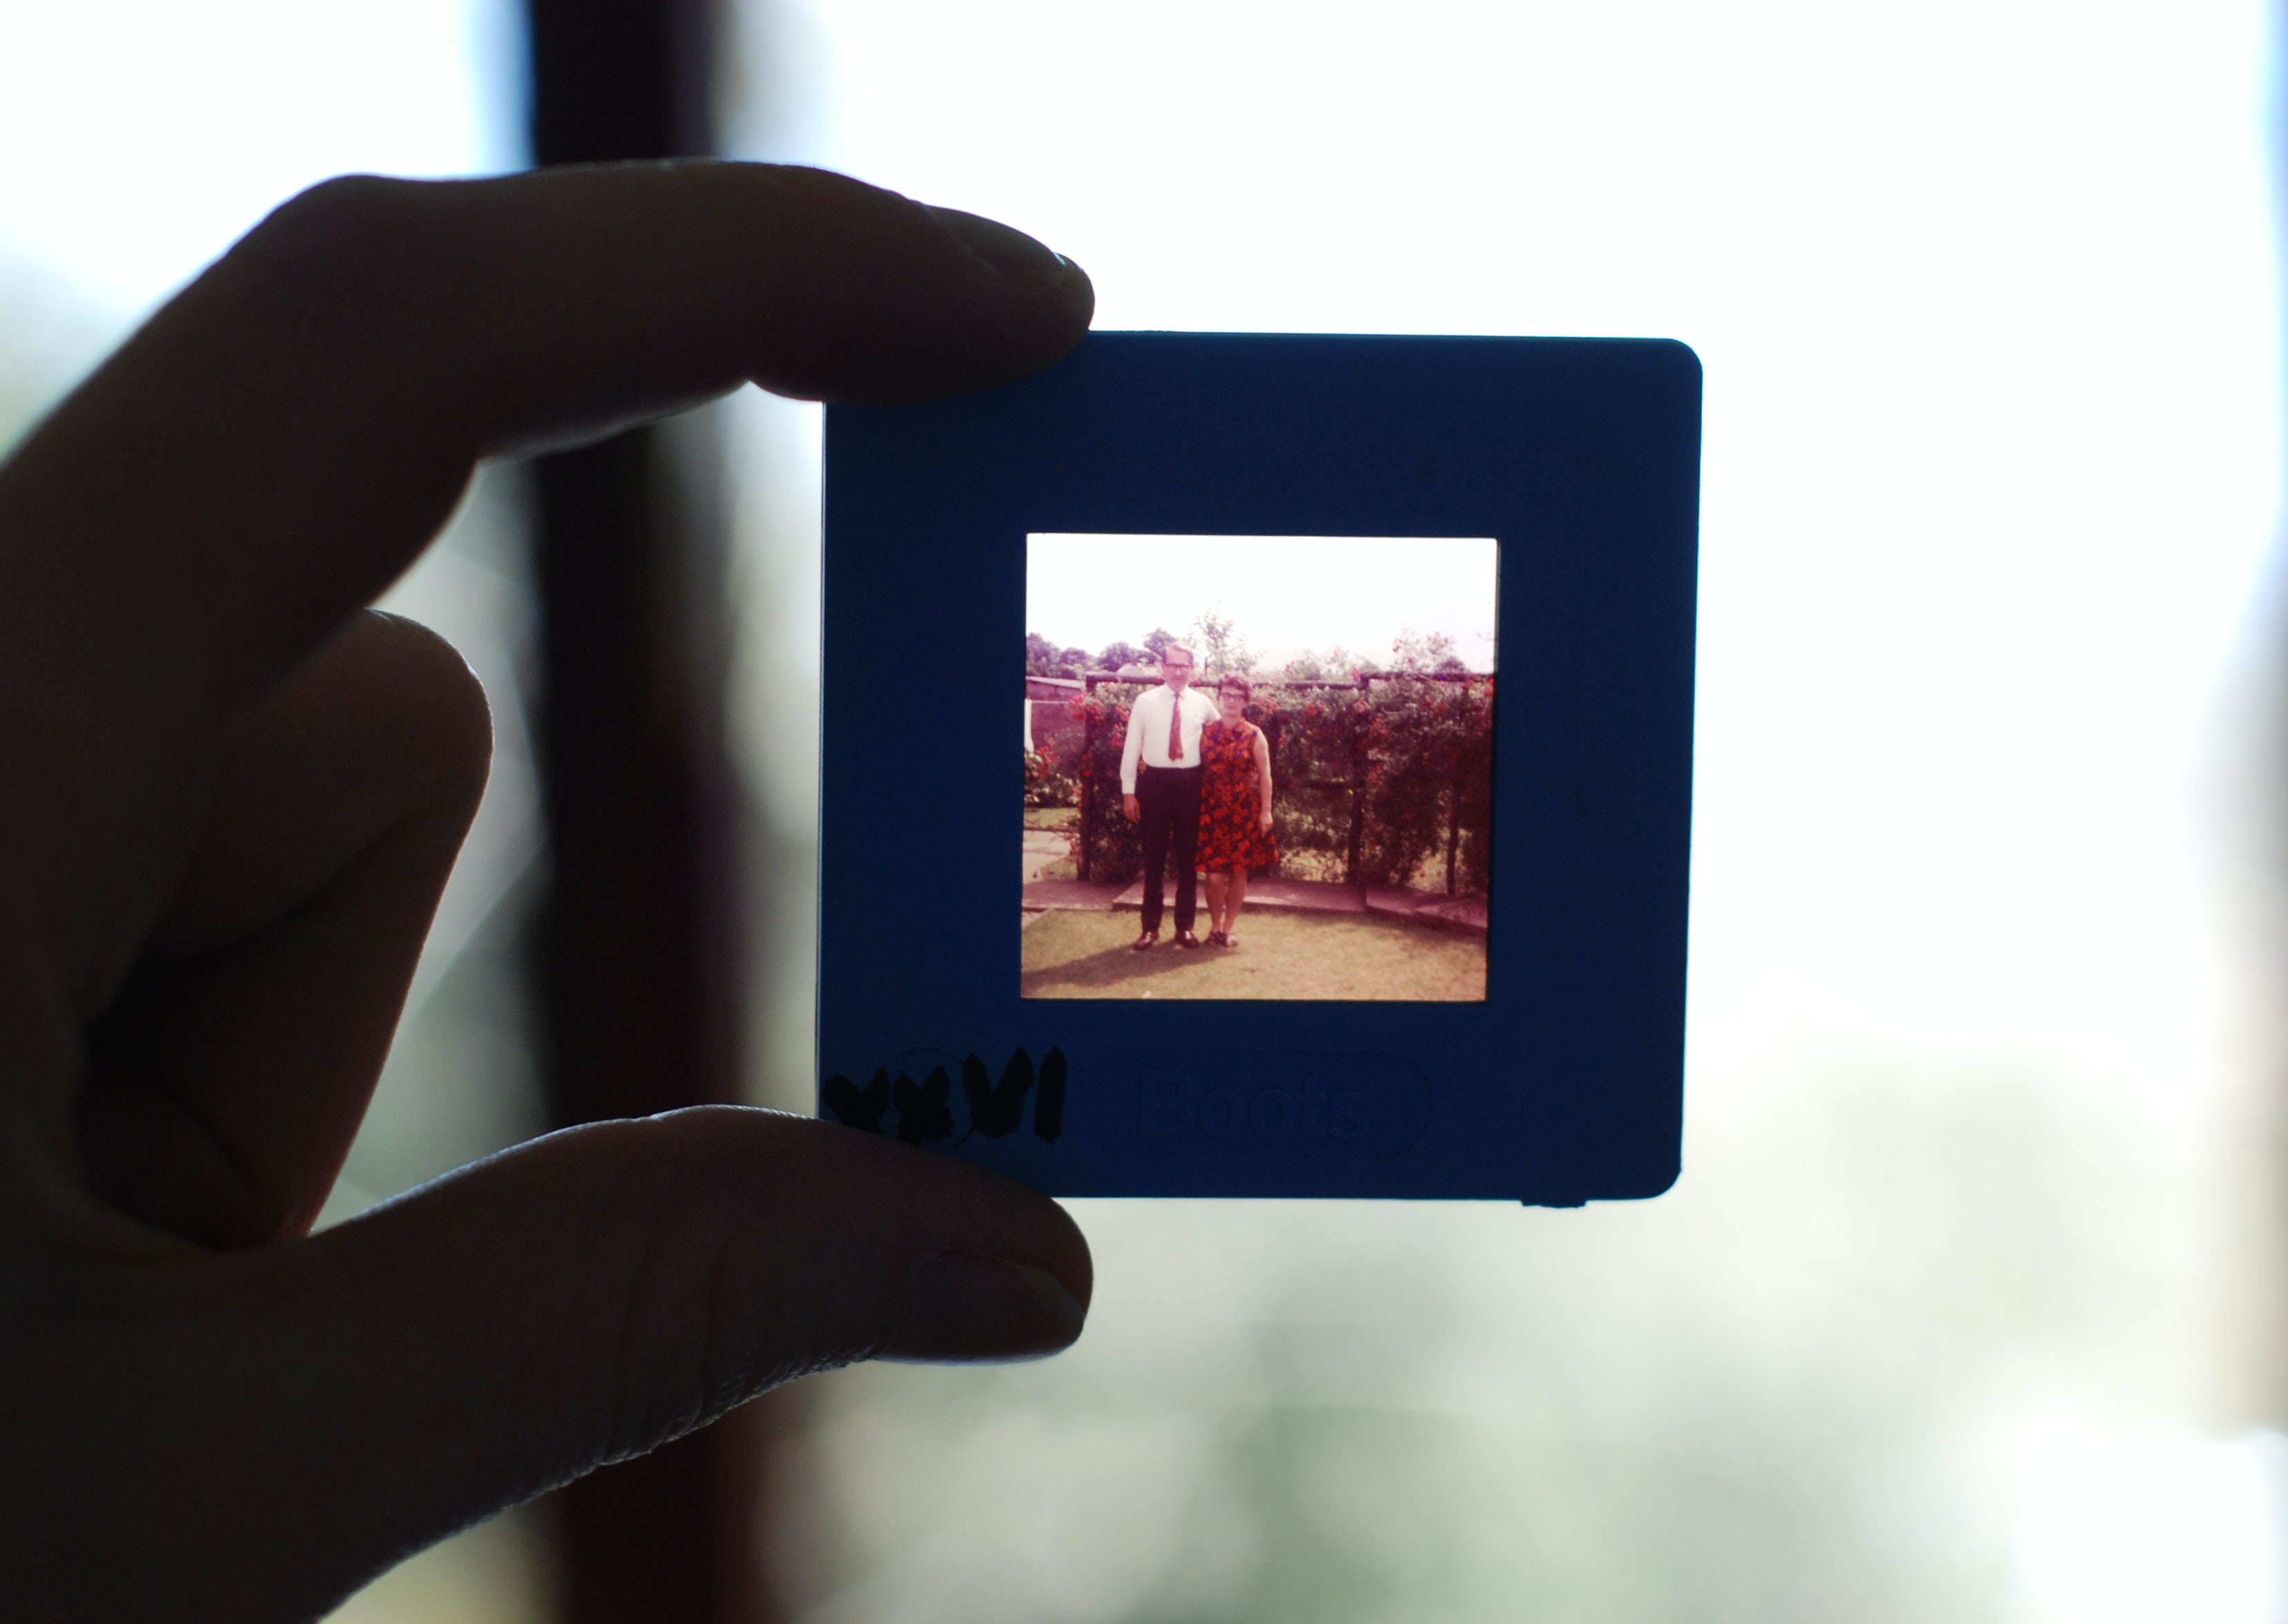 A hand holds a slide up to the light, on which is a dated image of a woman and man posing outside.